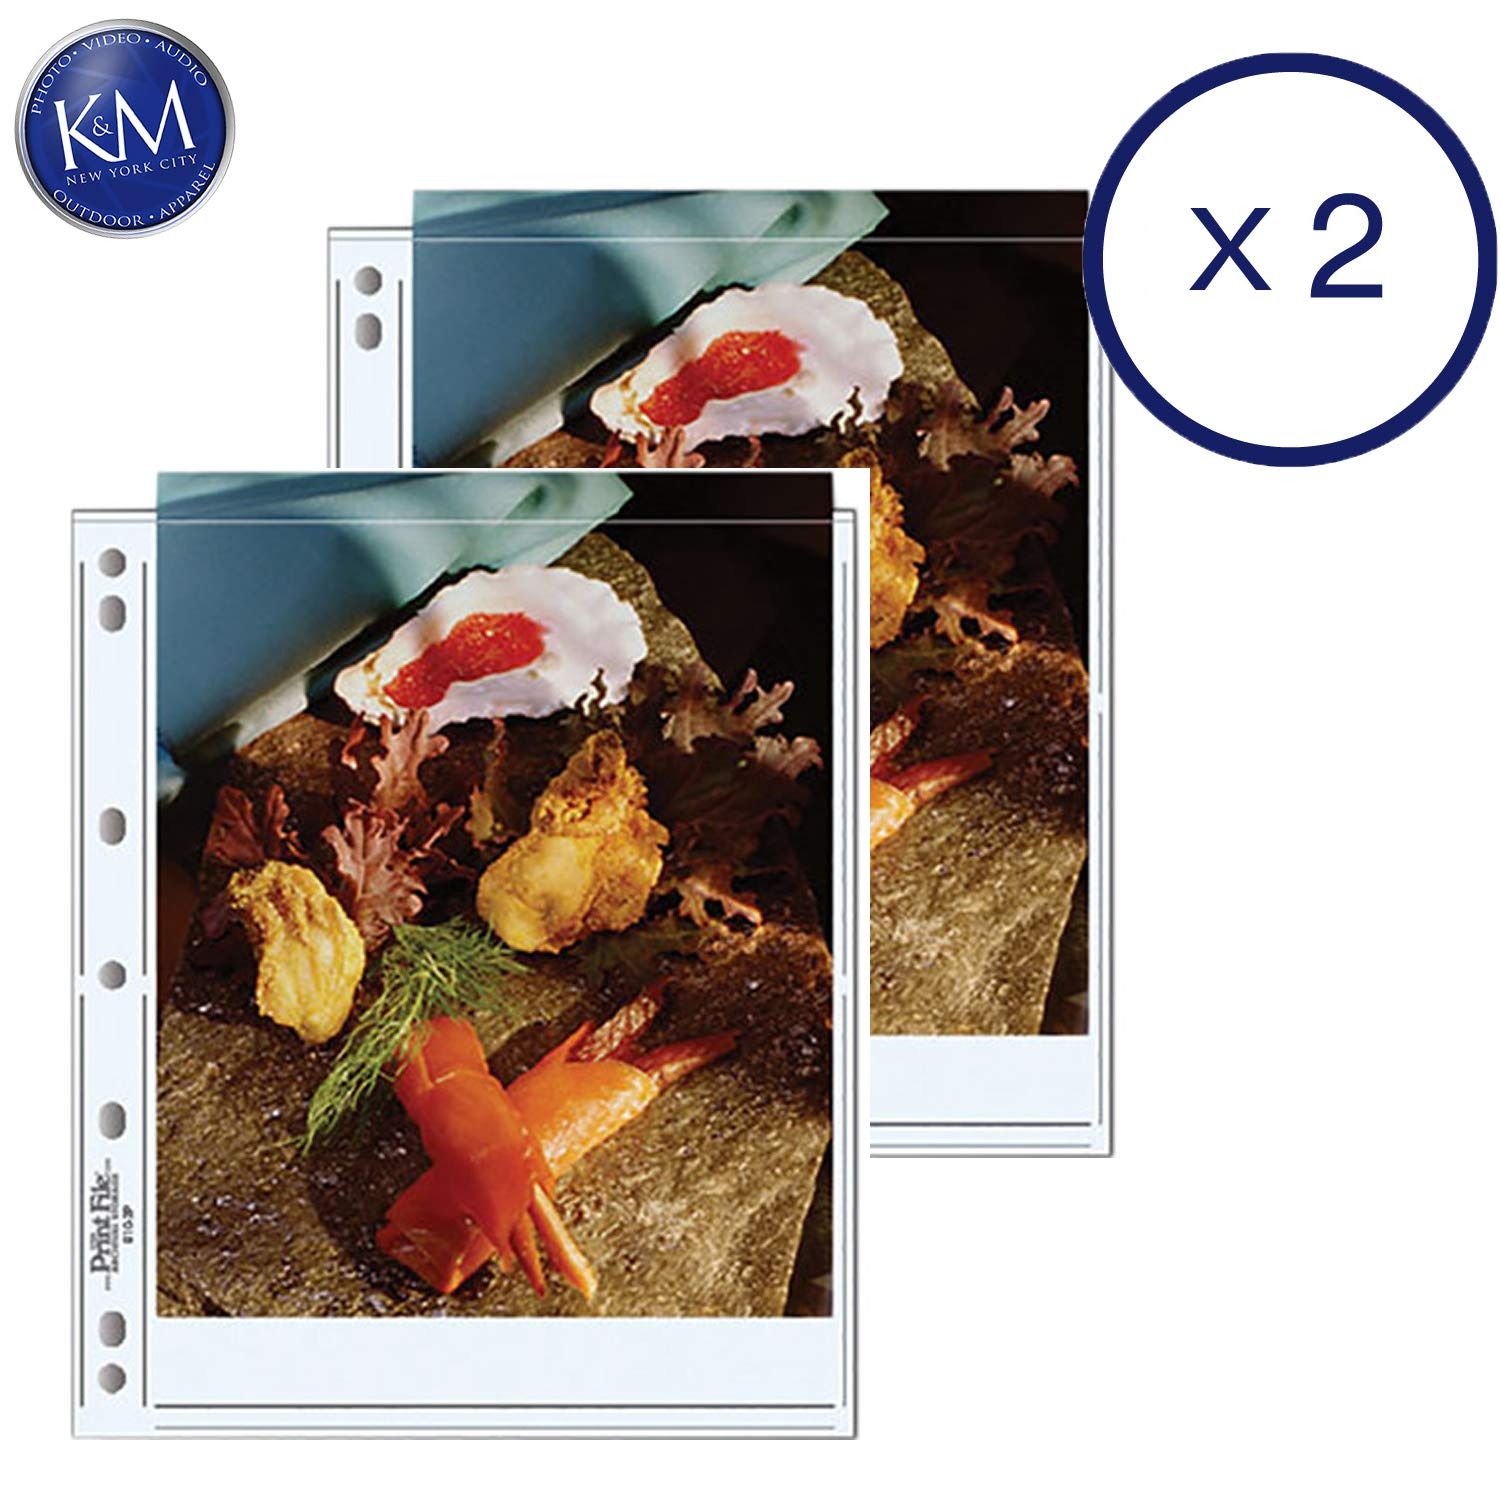 Print File Archival Storage Pages for Prints | 8 x 10, 2 Pockets - 25 Pack x 2 by Print File